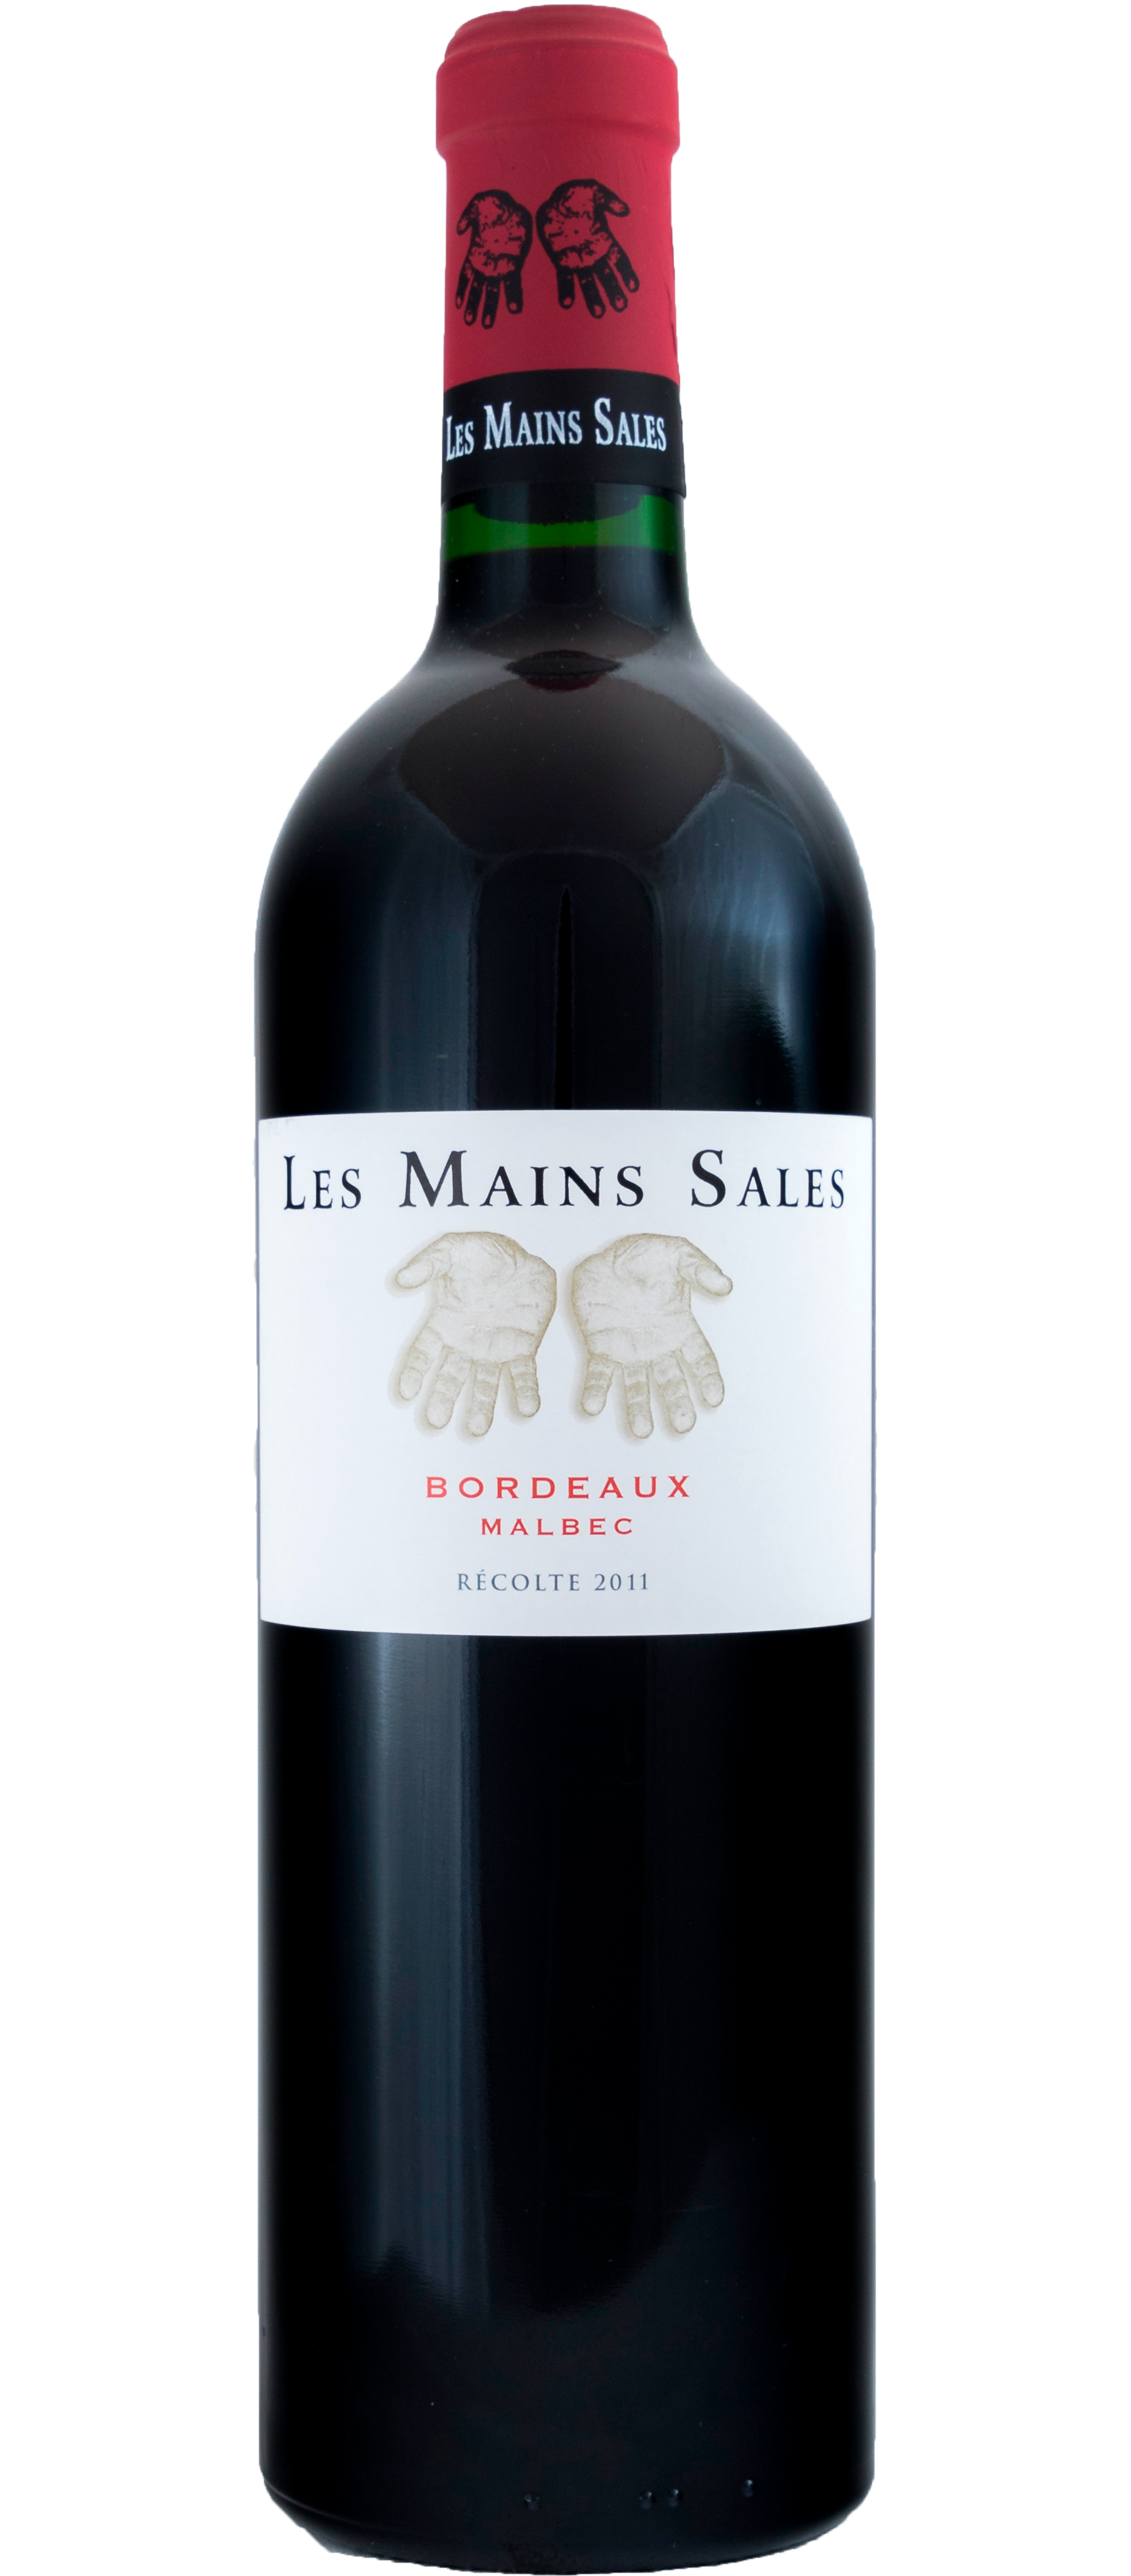 les mains sales 100% malbec